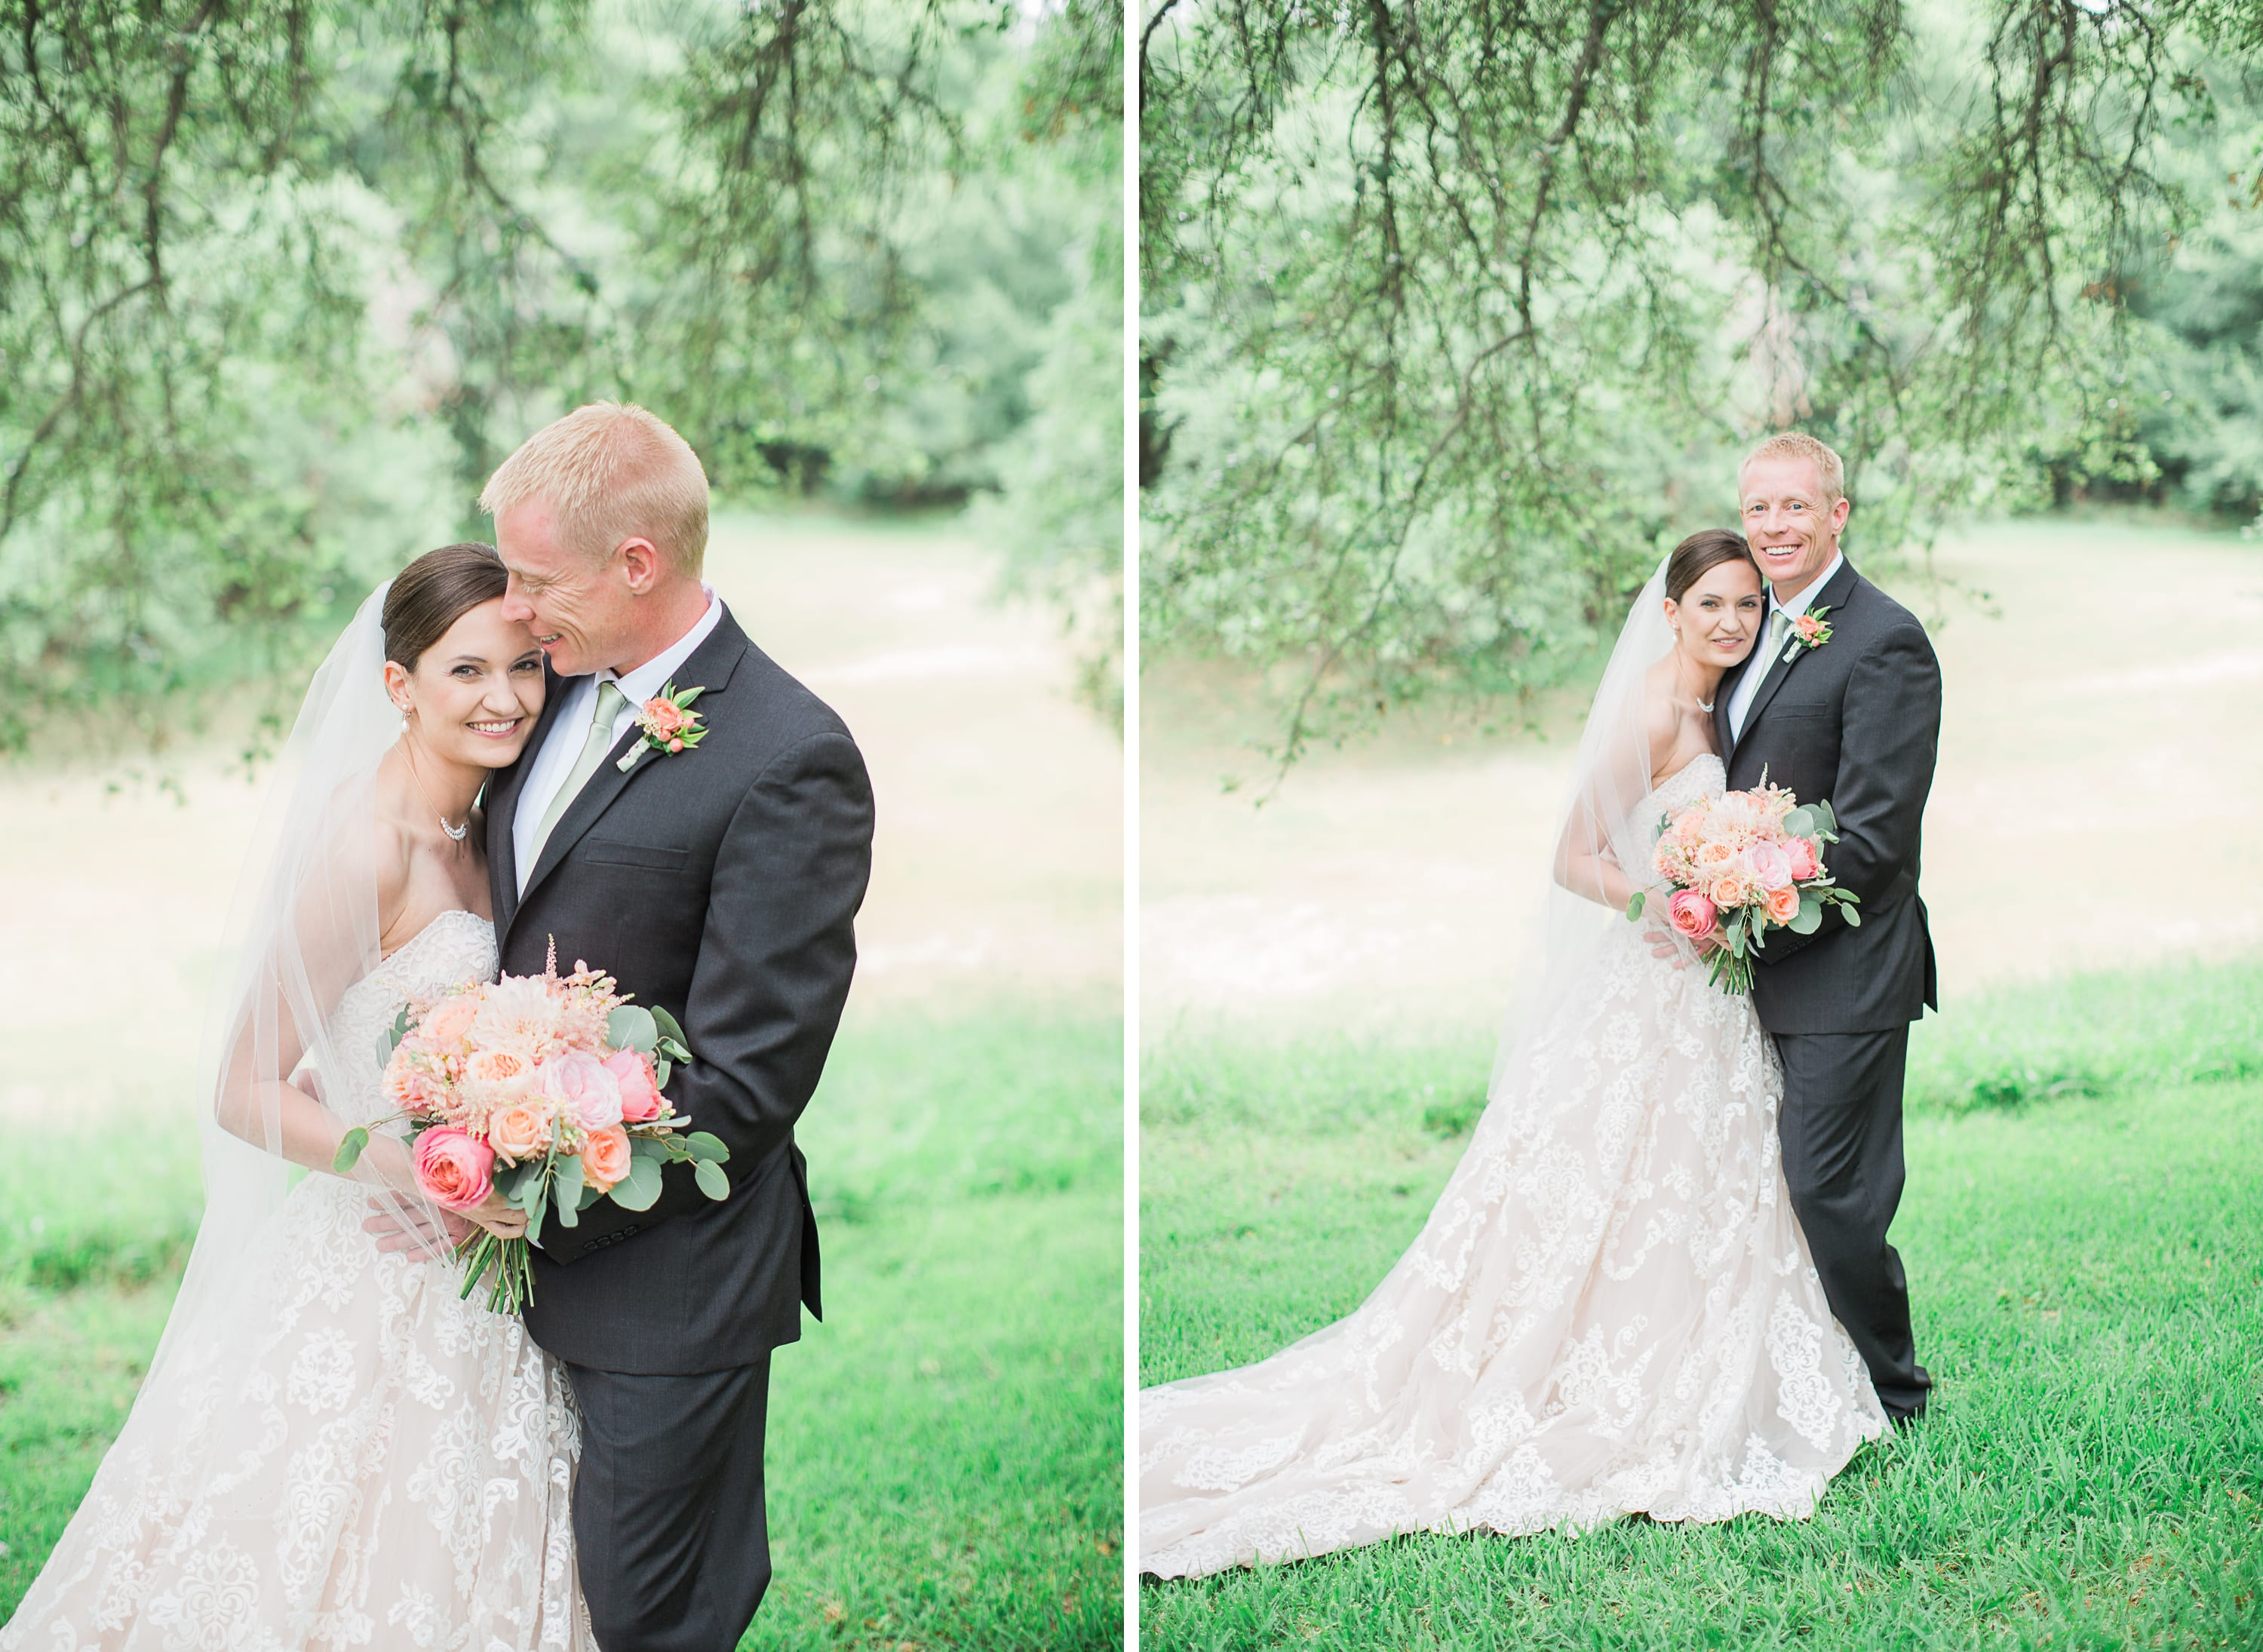 dallas-wedding-photographer-jessica-quadra-rb-4